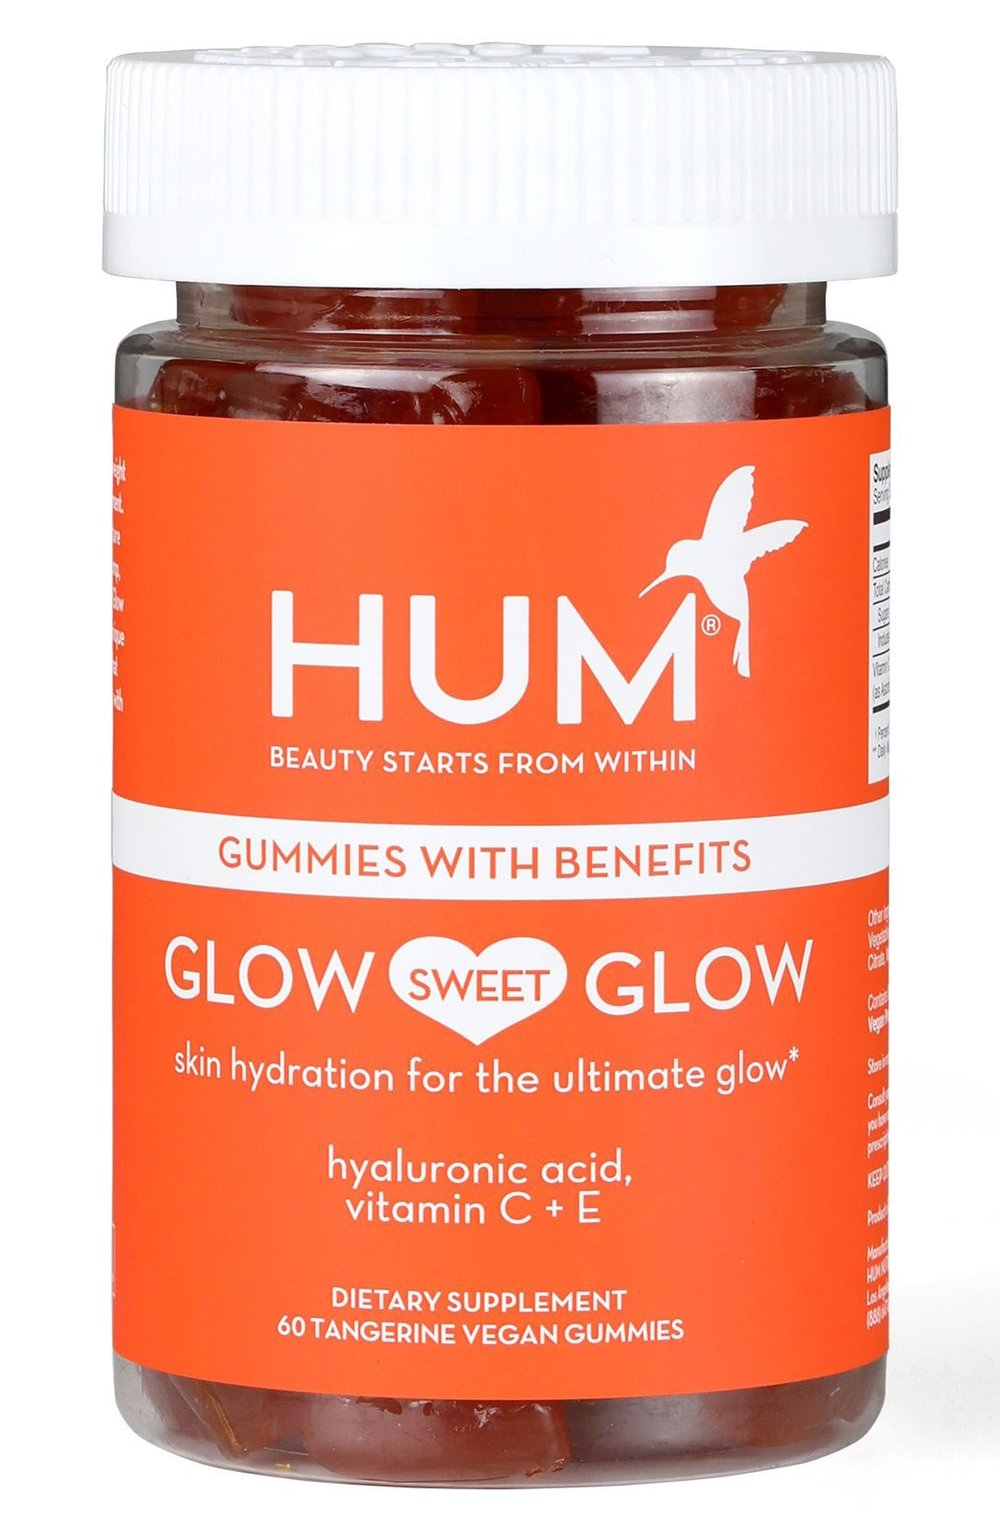 7. HUM Glow Sweet Glow Suppliment - Facts: Free of sulfates, phthalates, parabens, petrochemicals, mineral oil, silicone and talc, vegan and cruelty free.Shop Here